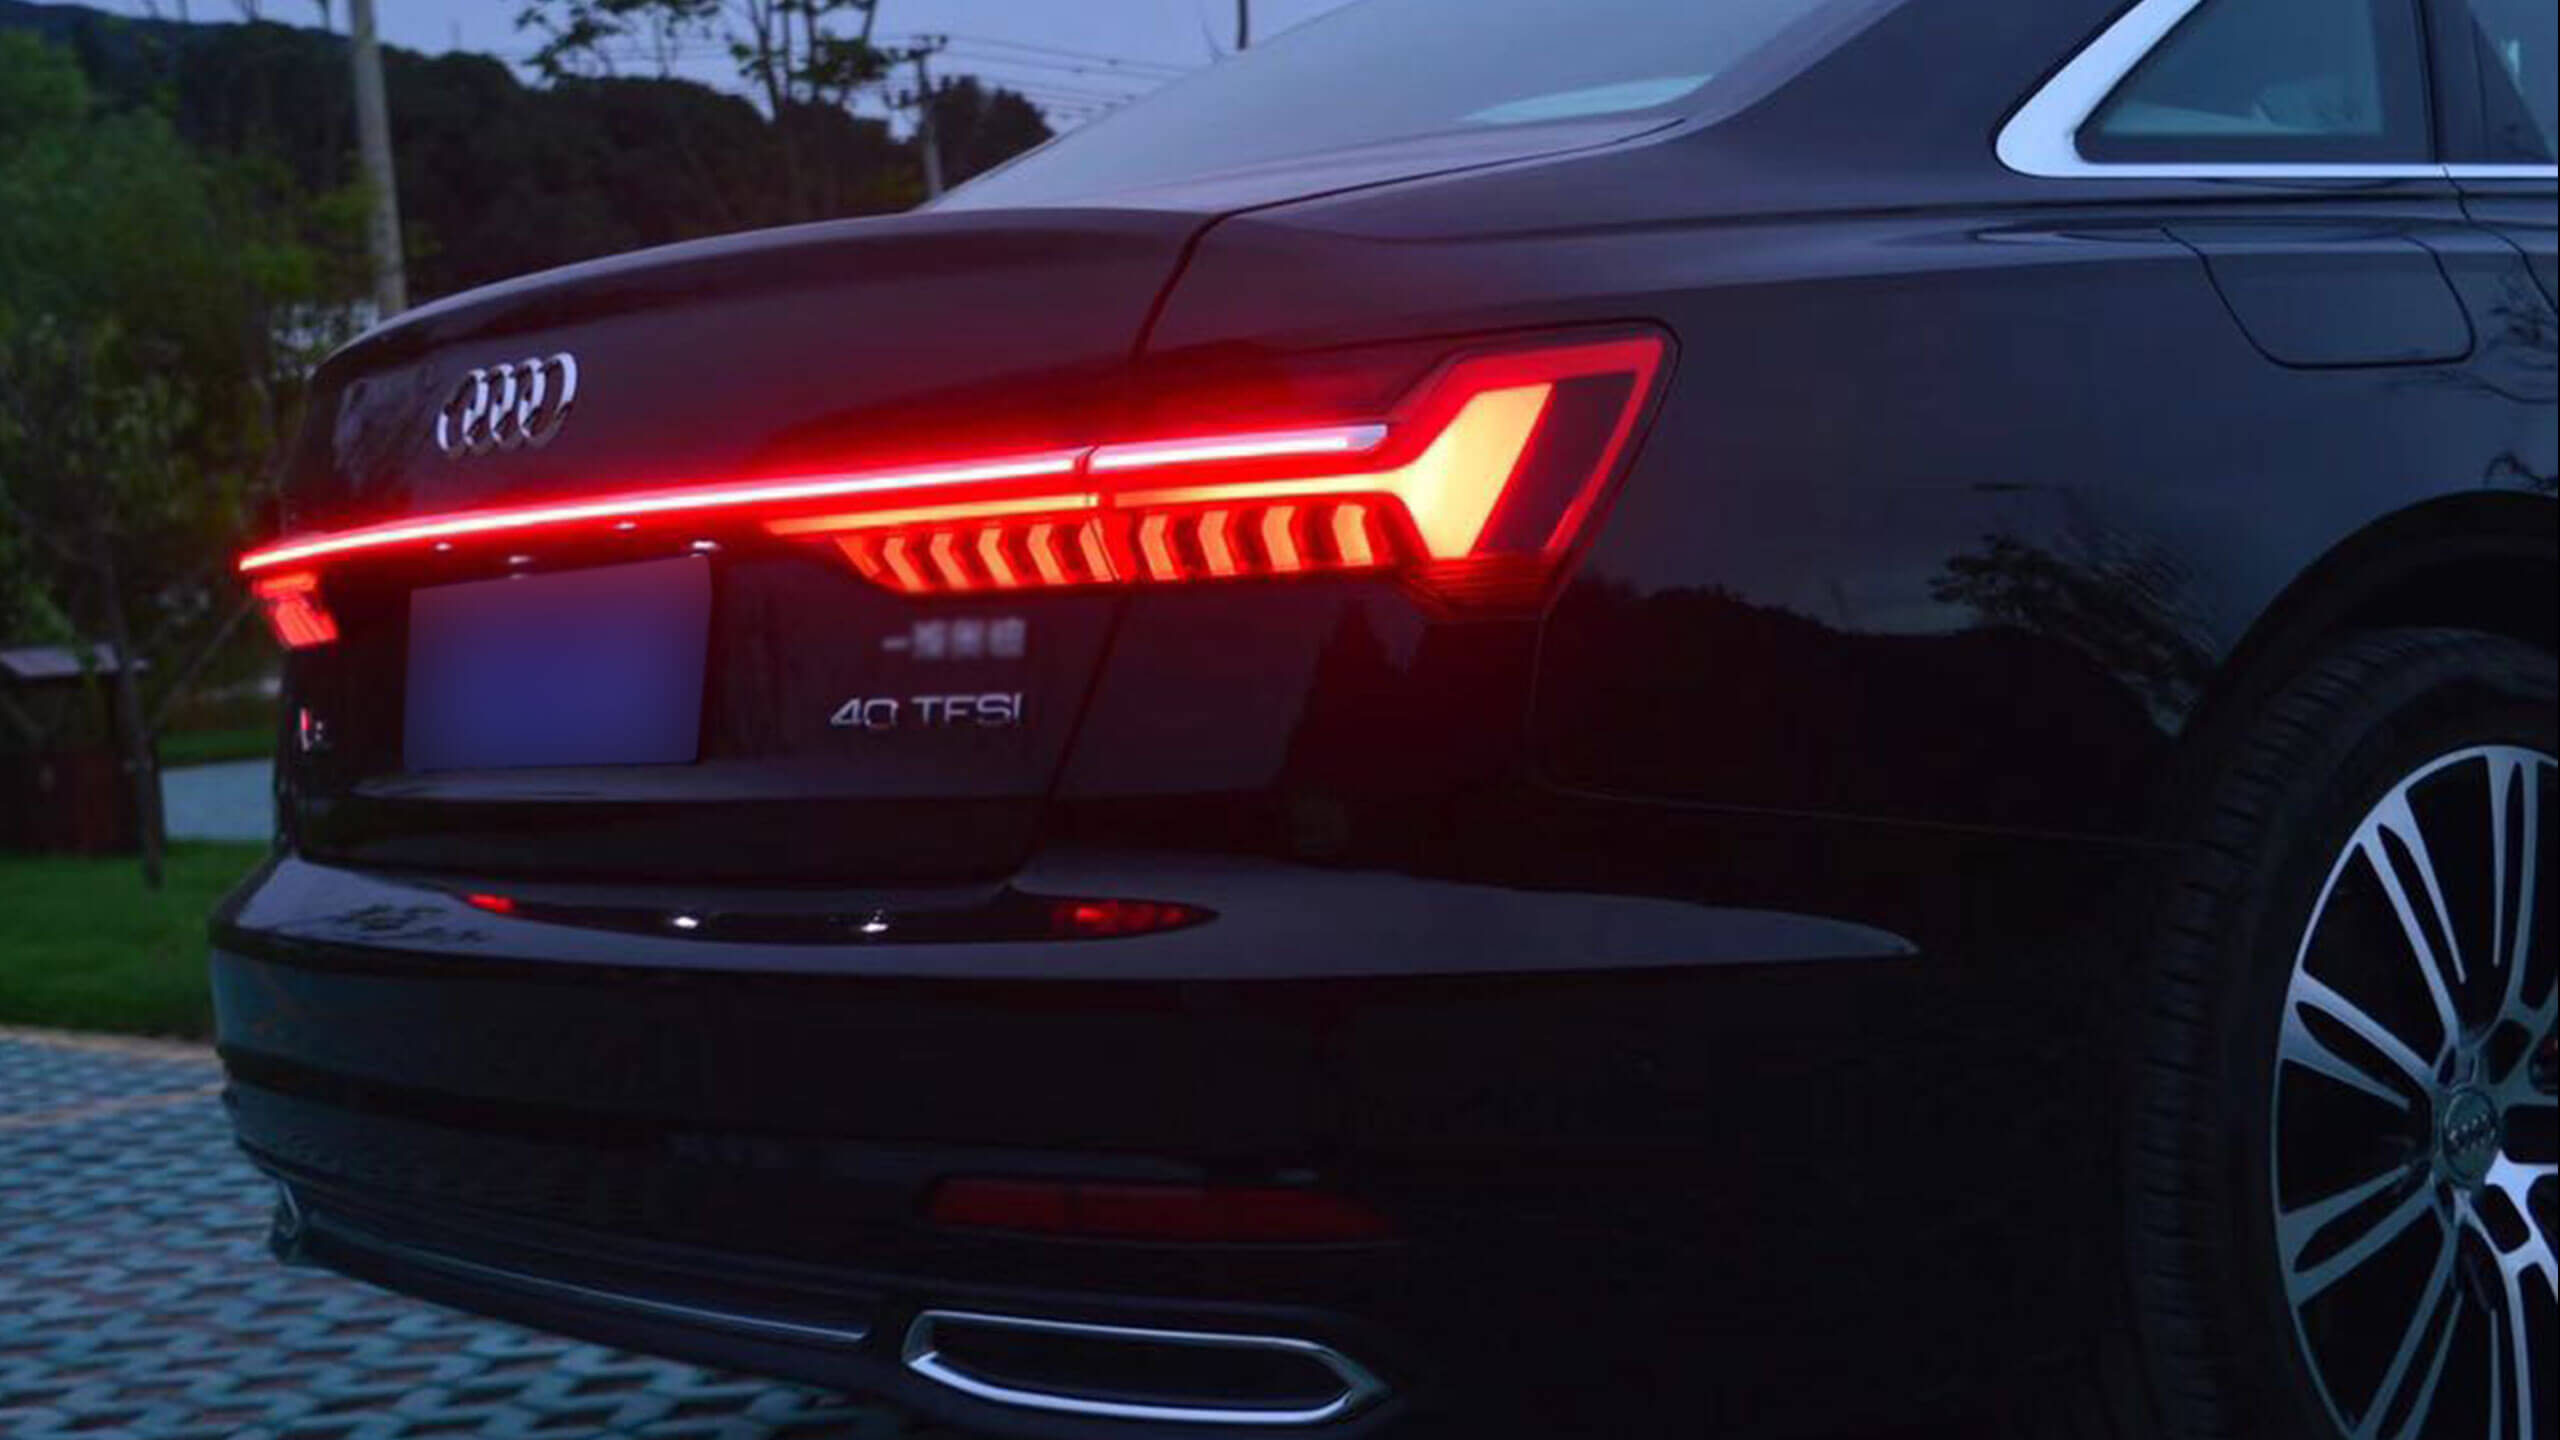 111 How to install Animation Audi Tail Light